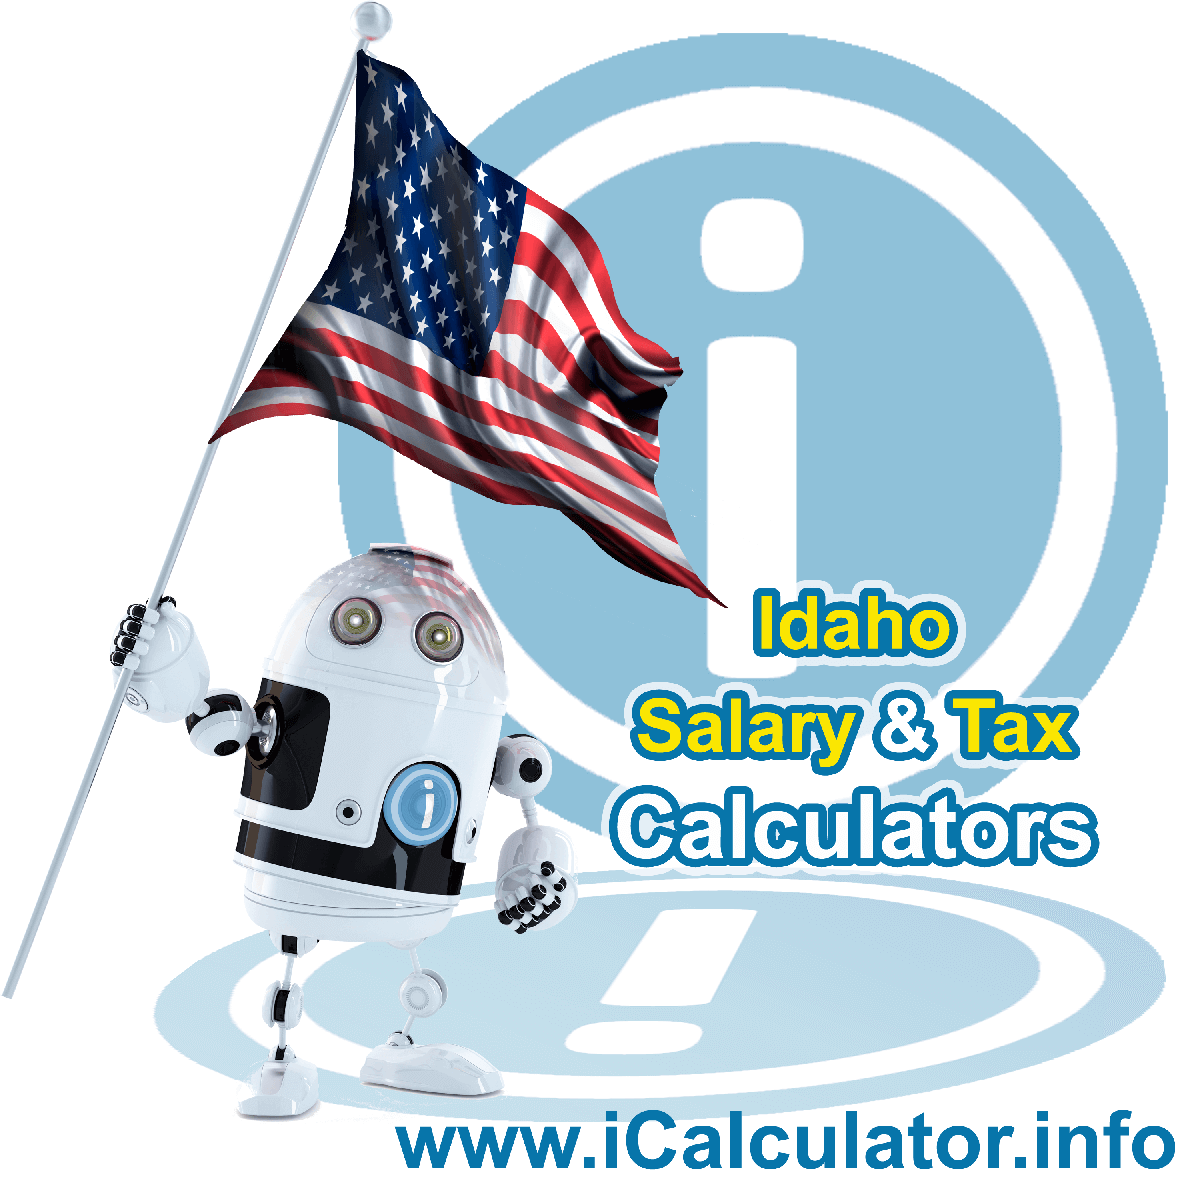 Idaho Salary Calculator 2020 | iCalculator | The Idaho Salary Calculator allows you to quickly calculate your salary after tax including Idaho State Tax, Federal State Tax, Medicare Deductions, Social Security, Capital Gains and other income tax and salary deductions complete with supporting Idaho state tax tables